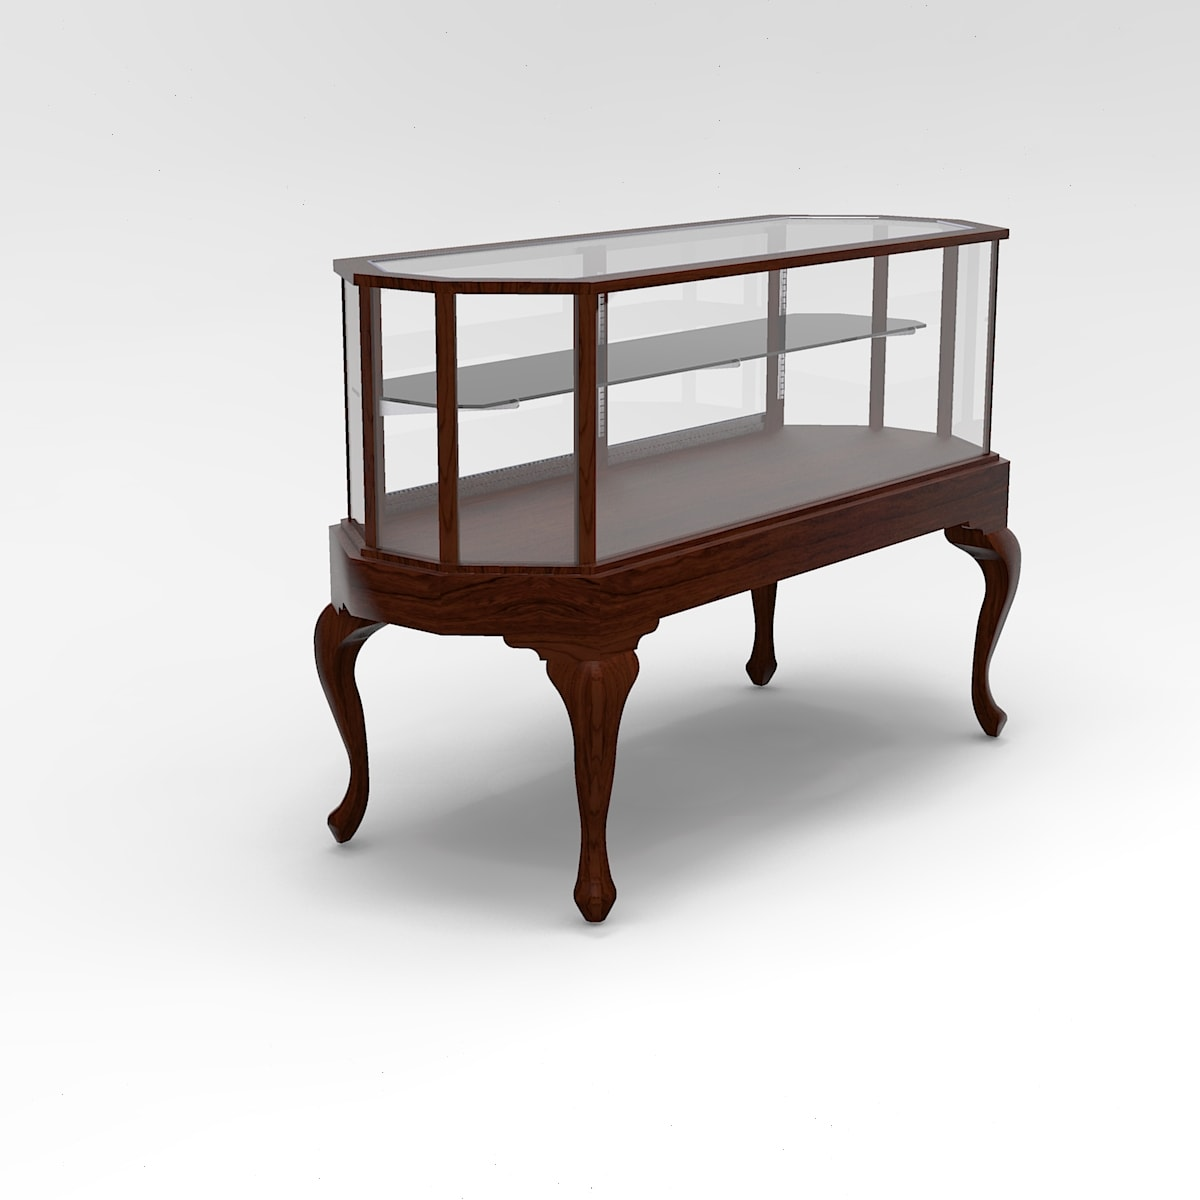 60 Inch Half Vision Queen Anne Leg Octagon Horizontal Display Case to Purchase